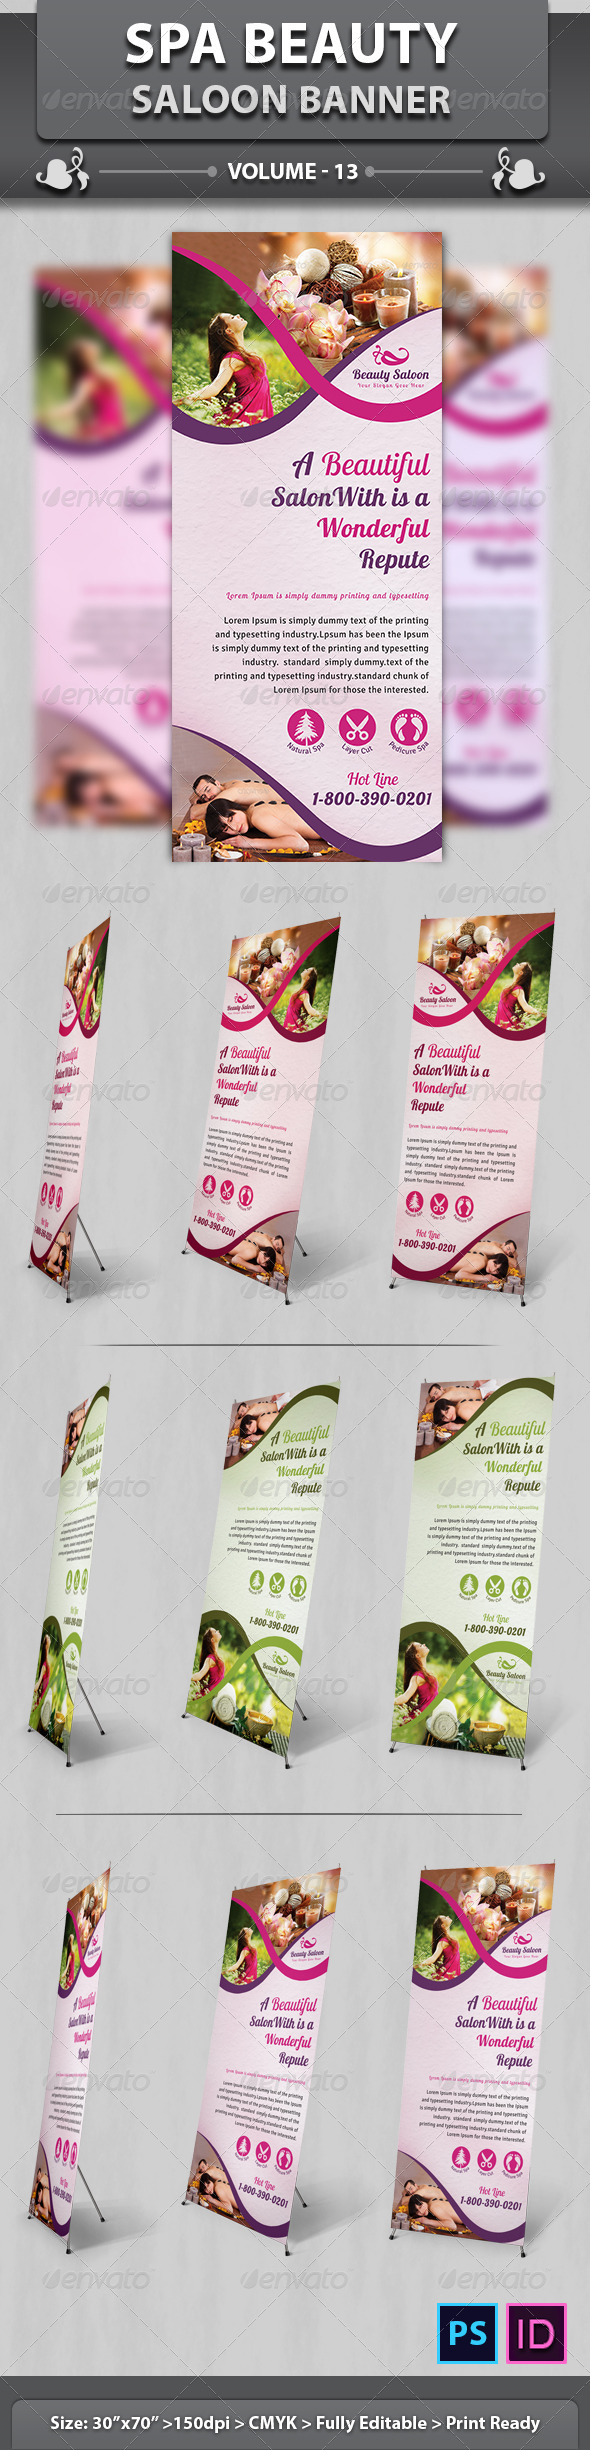 Spa & Beauty Saloon Banner | Volume 13 - Signage Print Templates